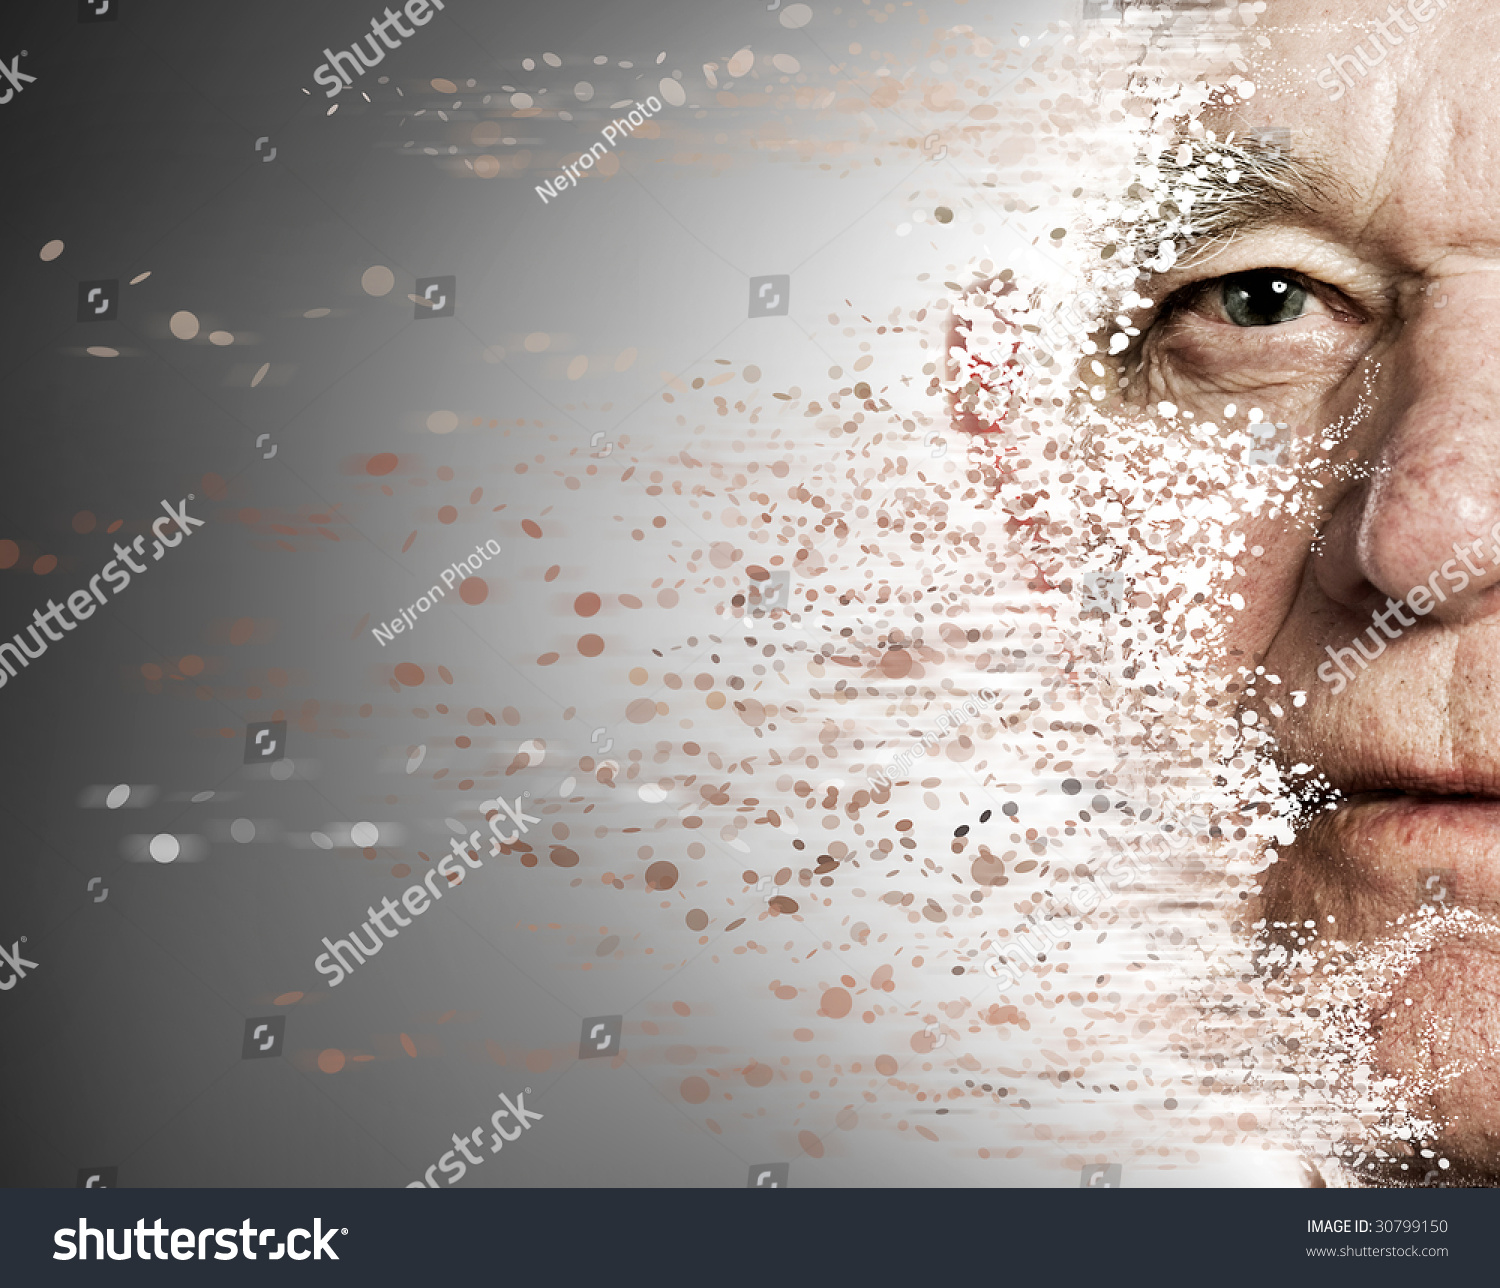 I Fall Apart Music Id: Elderly Man'S Face Falling Apart. Aging Concept Stock